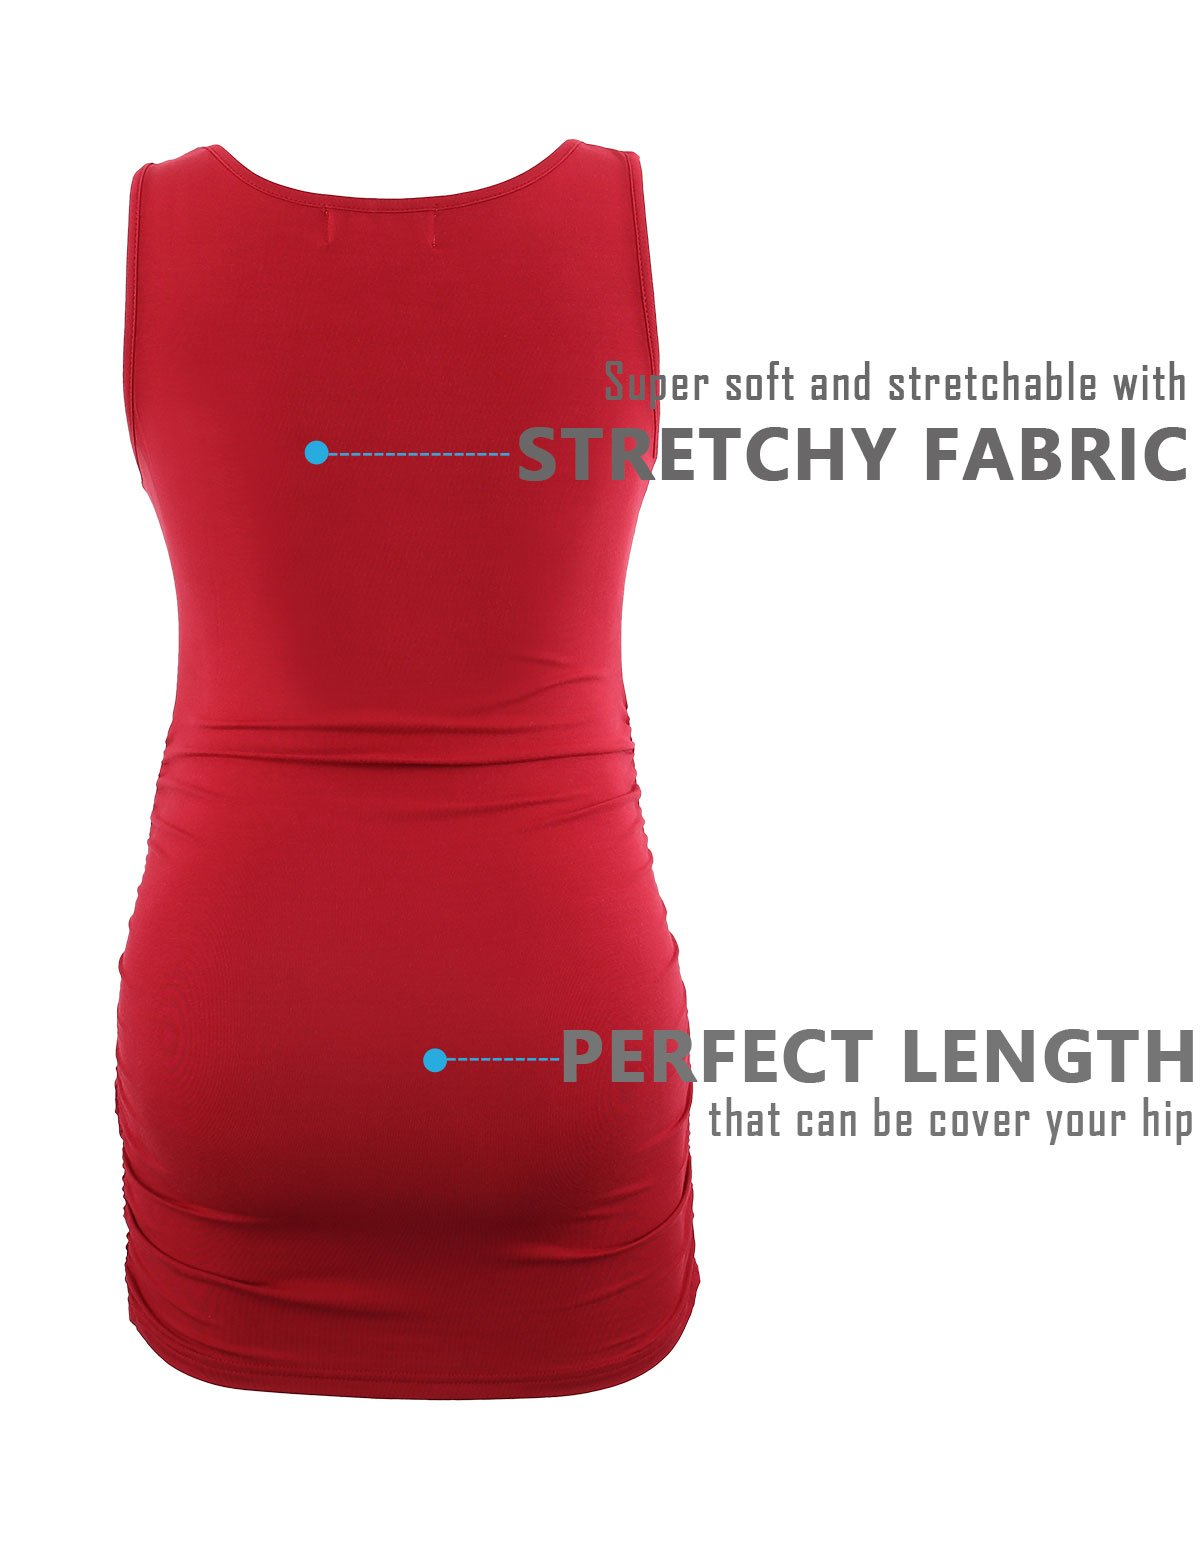 Peauty Maternity Tank Tops Bathing Suit t Shirts Shorts Pregnancy Clothes Women Plus Size 2X 3X (WineRed,XXXL) by Peauty (Image #4)